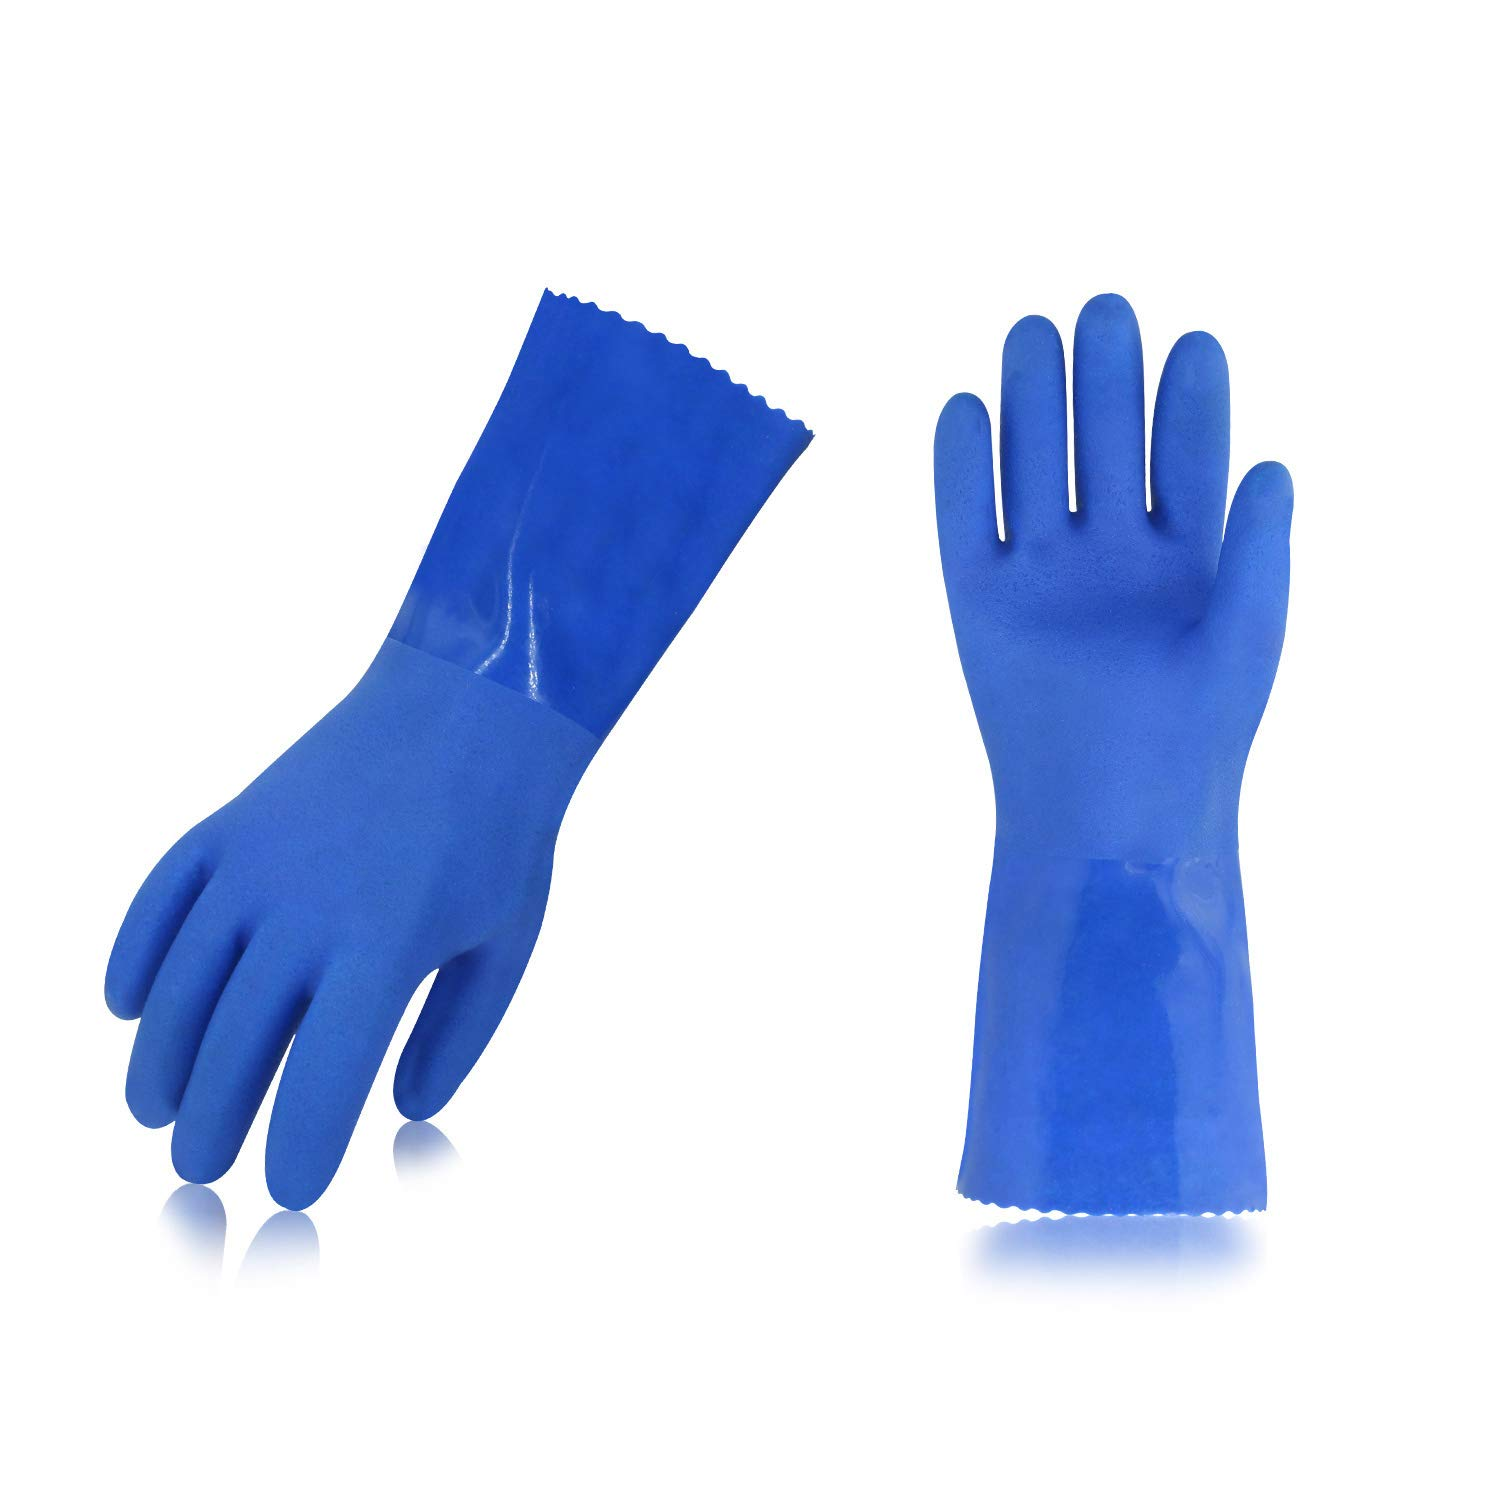 Vgo 2Pairs Heavy Duty PVC Gloves, Resist Strong Acid, Alkali and Oil (Size L,10.5in,Blue,PVC4010)